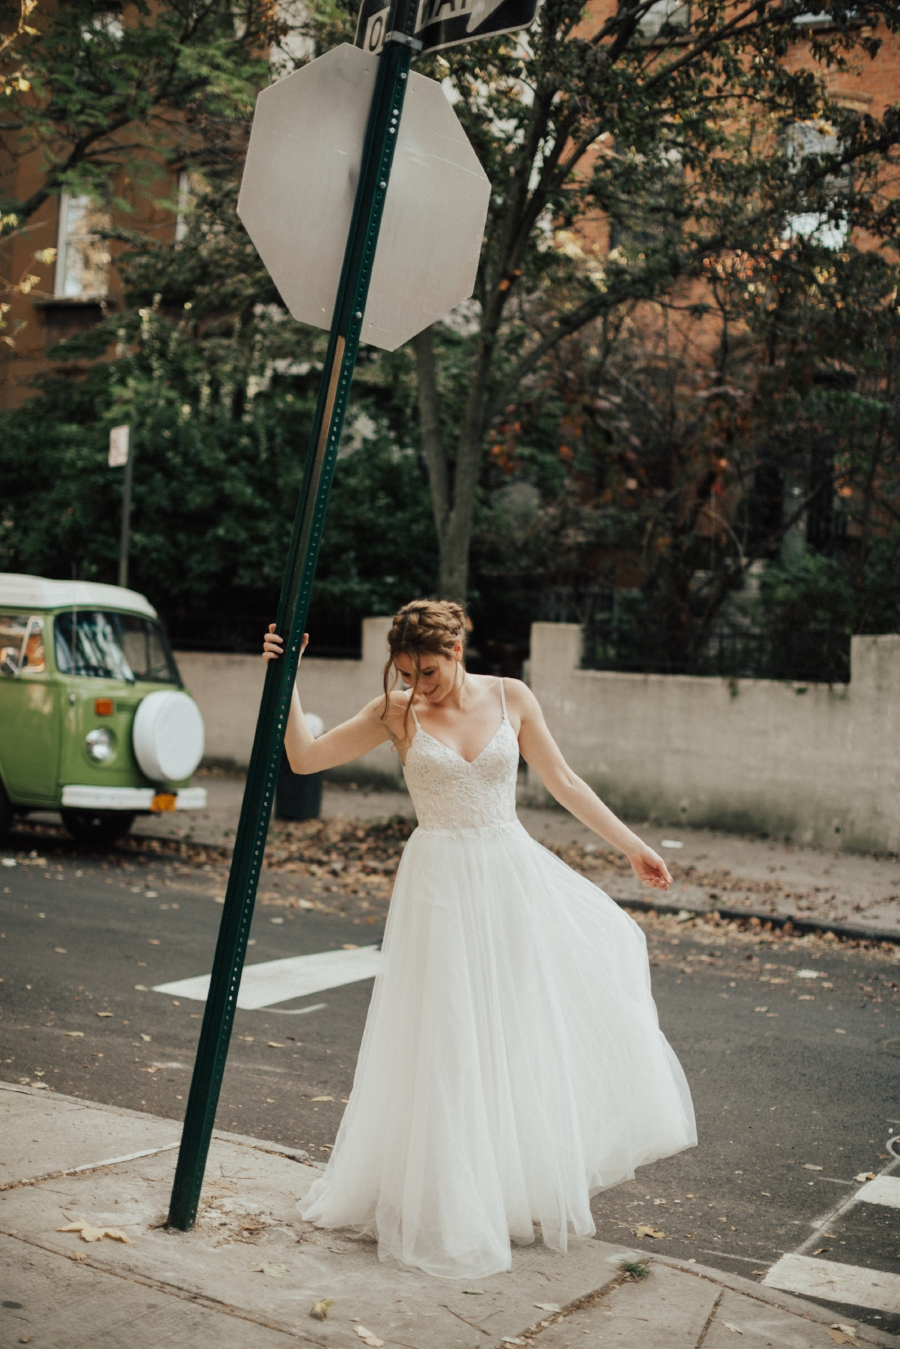 ivory-and-beau-bridal-boutique-marina-semone-trunk-show-marina-semone-wedding-gowns-vintage-inspired-wedding-gowns-3.jpg